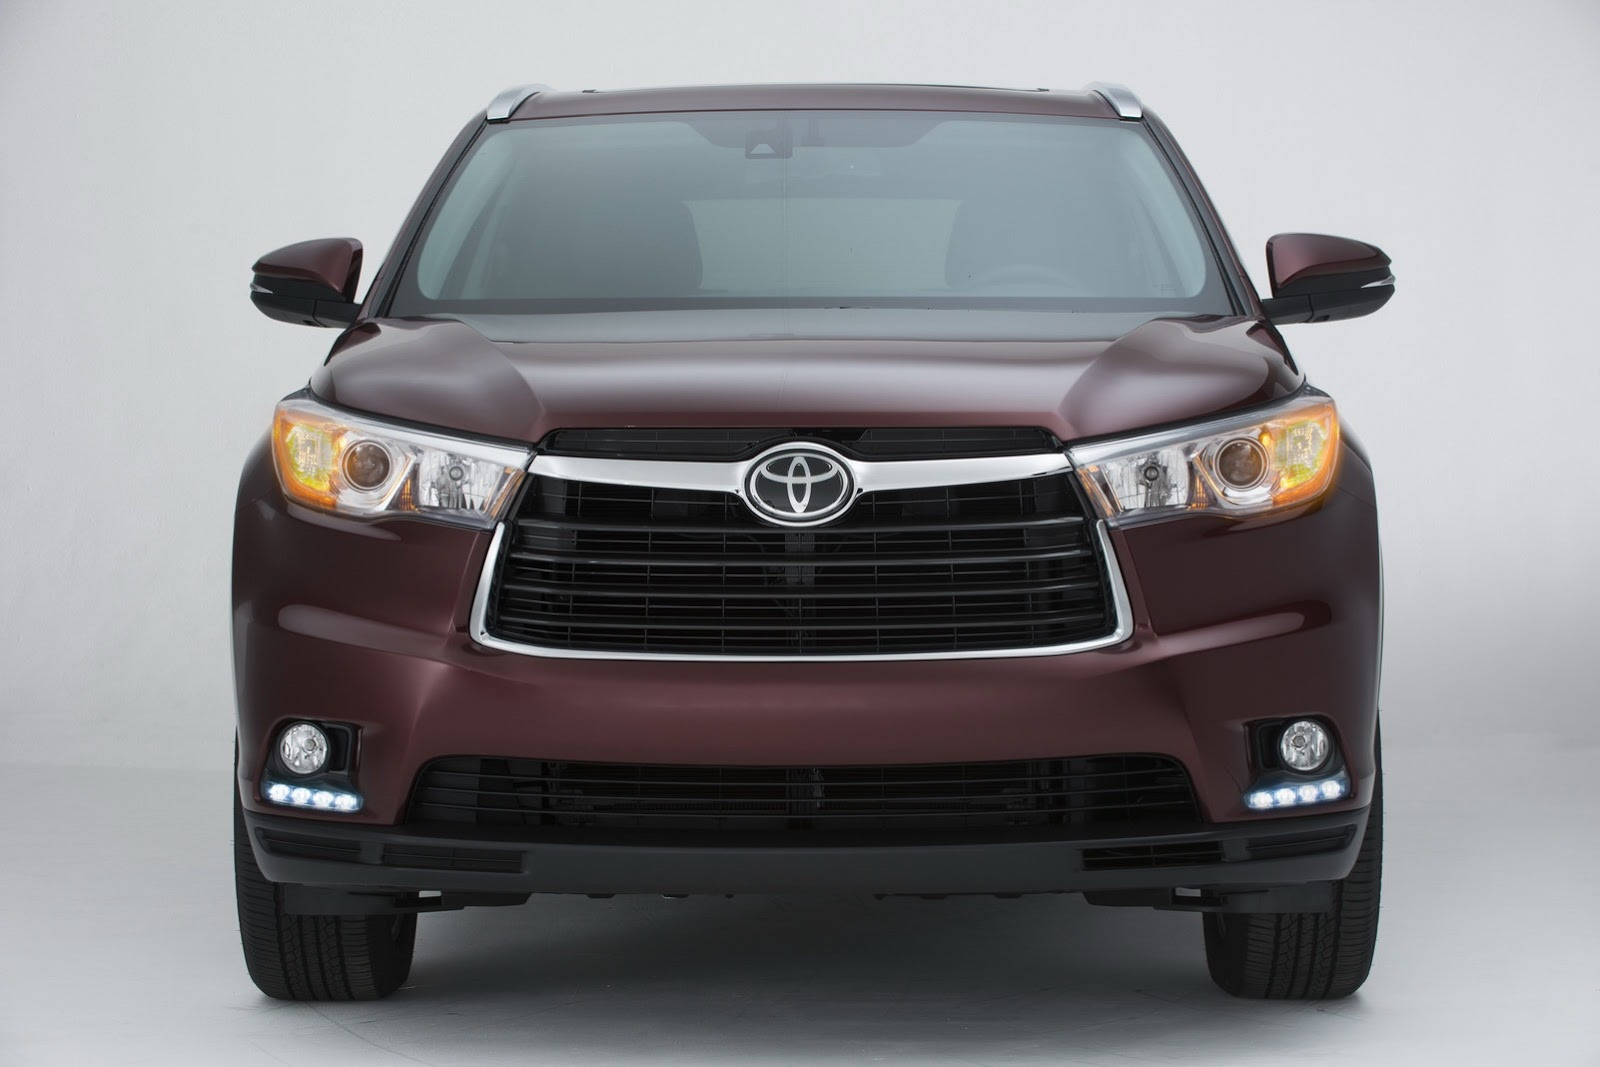 2014 Toyota Highlander - Photo #